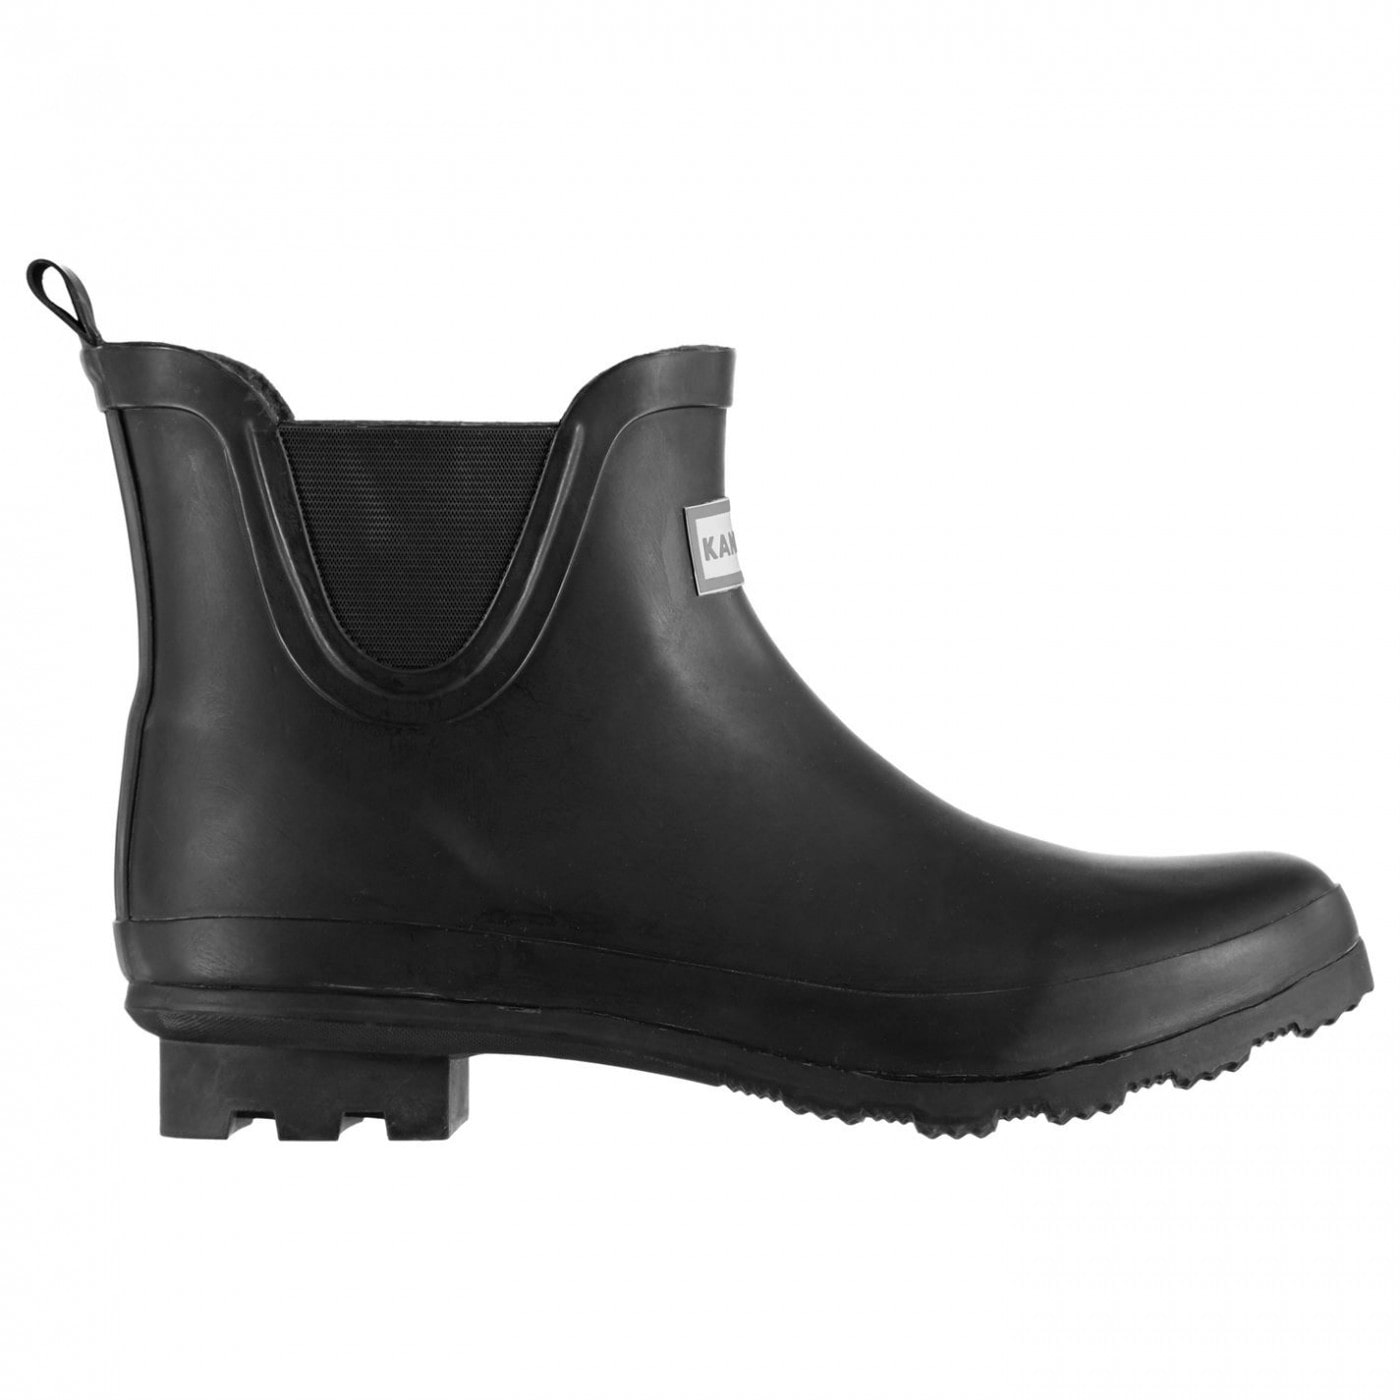 Kangol Short Wellies Ladies